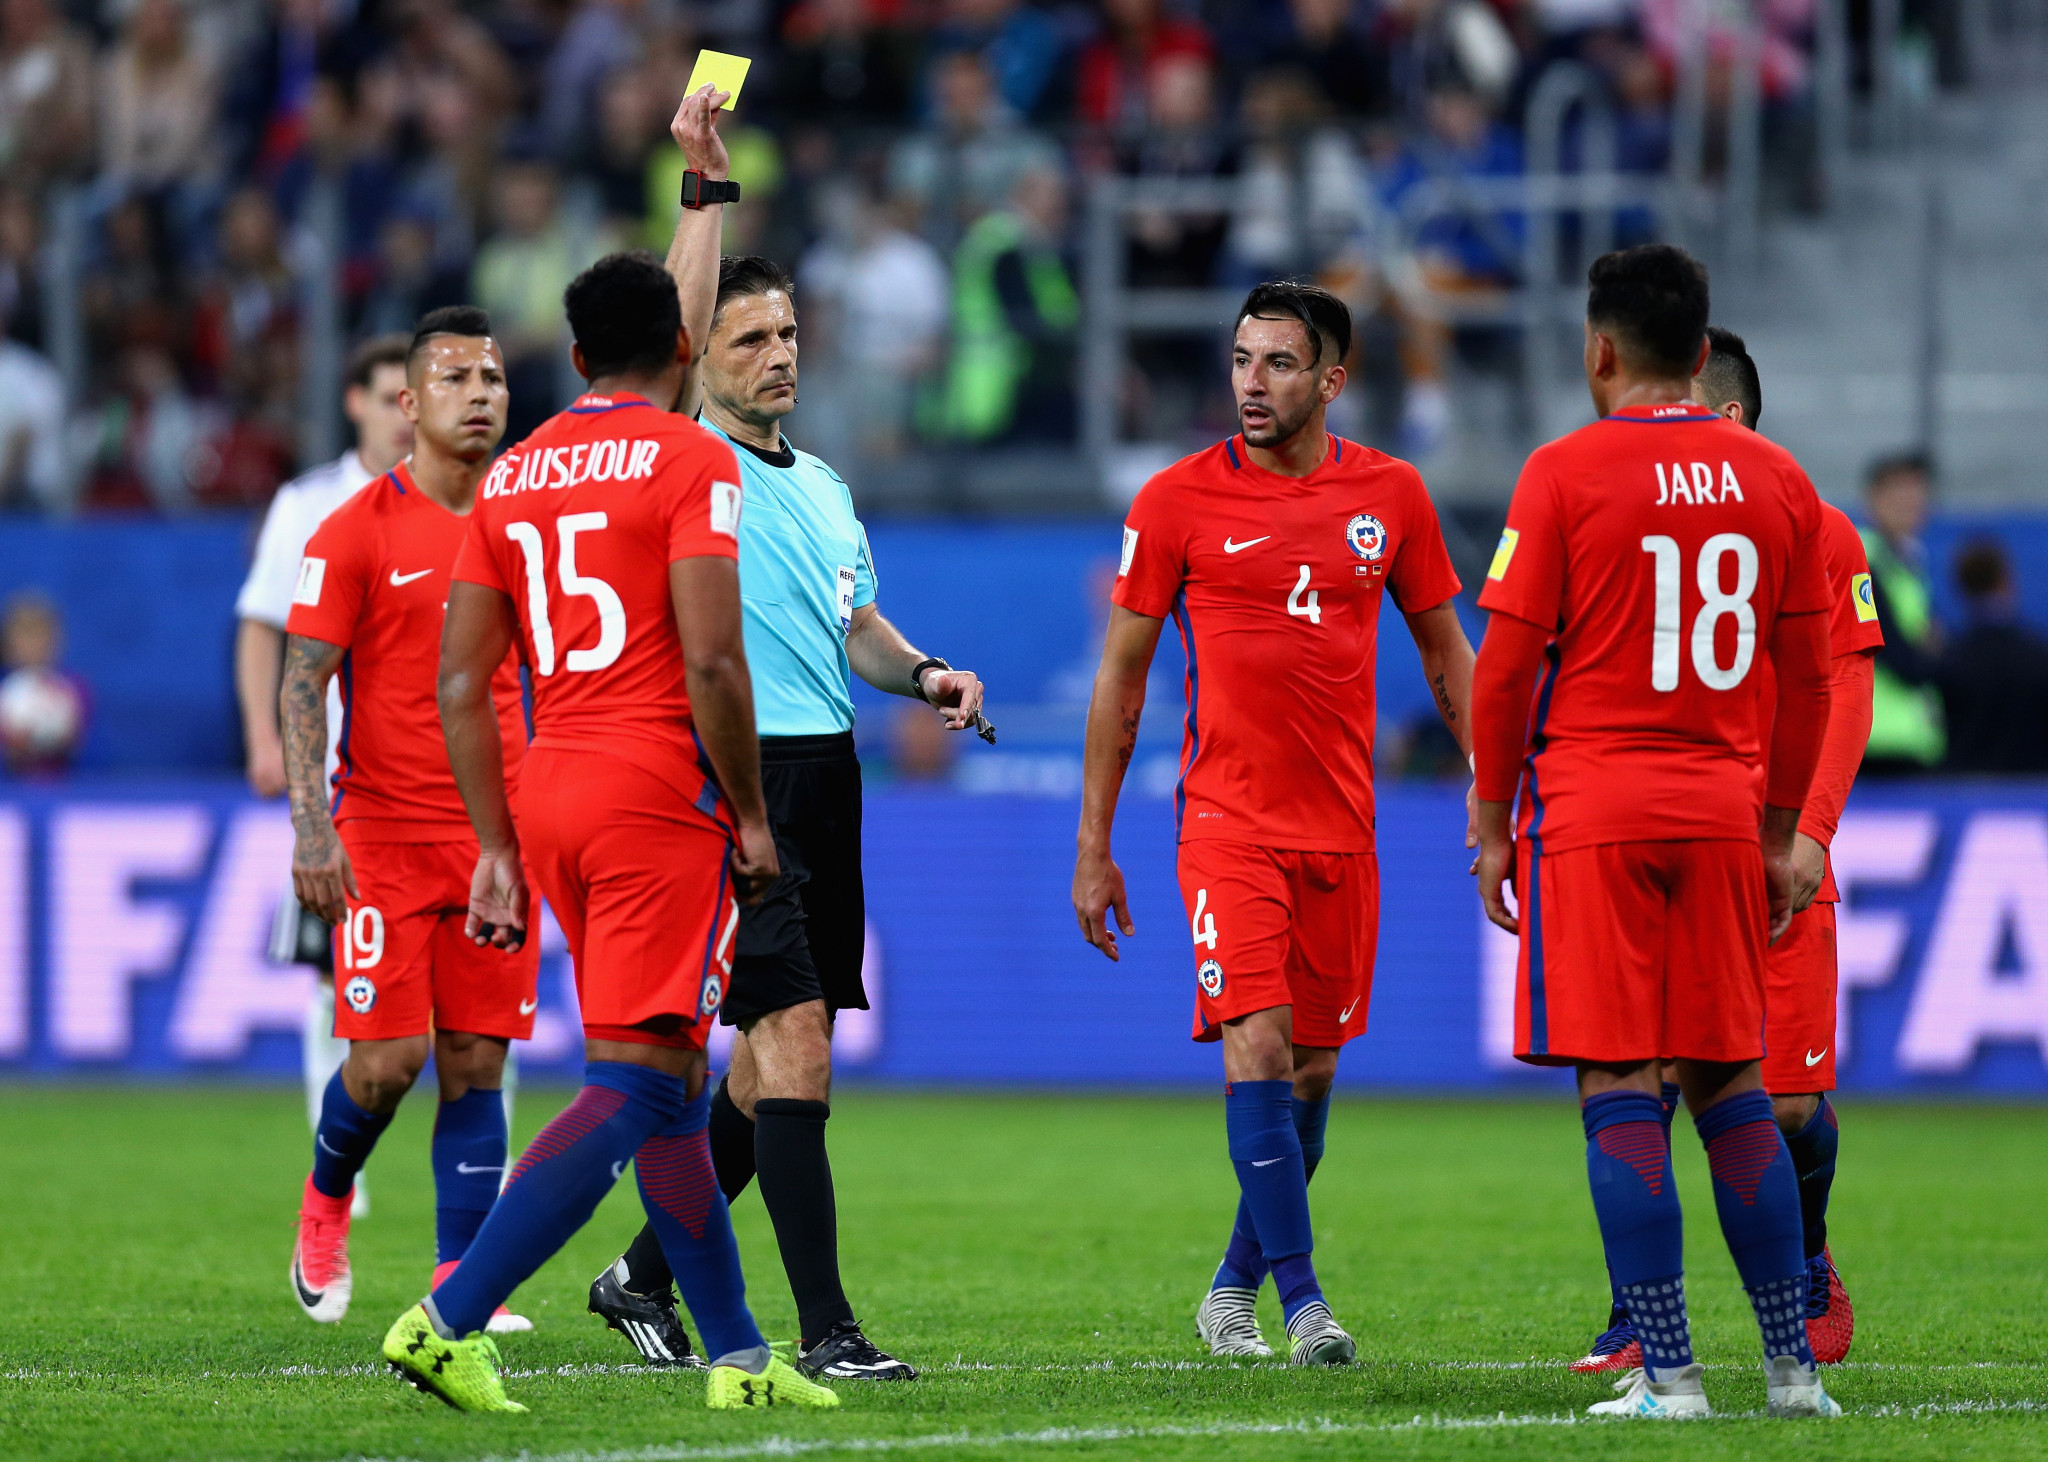 Many thought the VAR got it wrong when failing to give Gonzala Jara a red card during the Confederations Cup final against Germany ©Getty Images